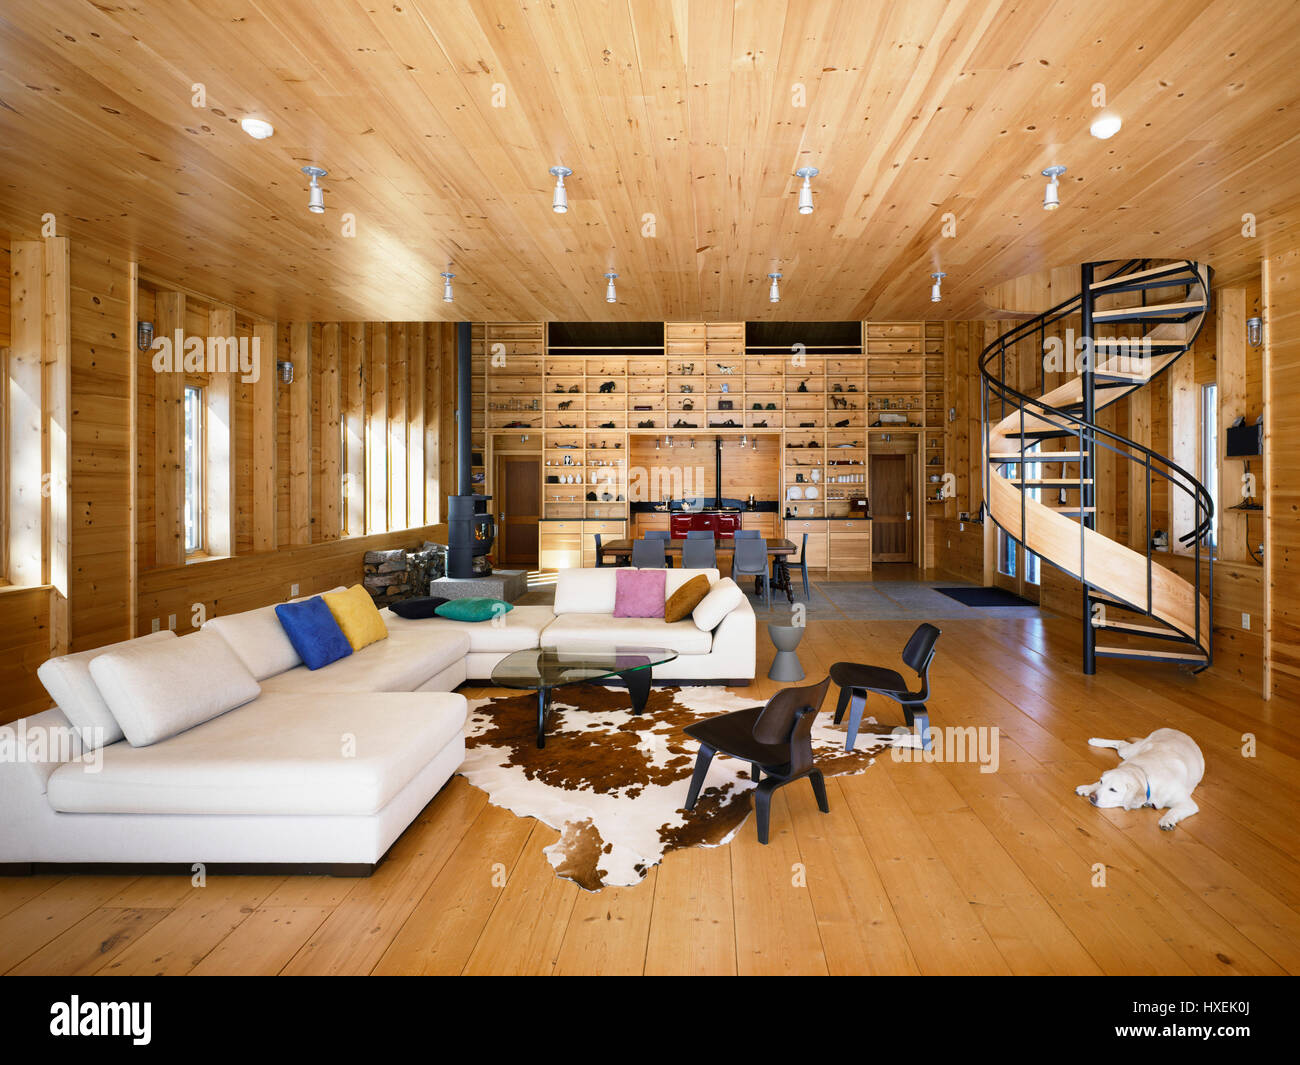 Living Room Spiral Staircase Wood Stockfotos & Living Room Spiral ...